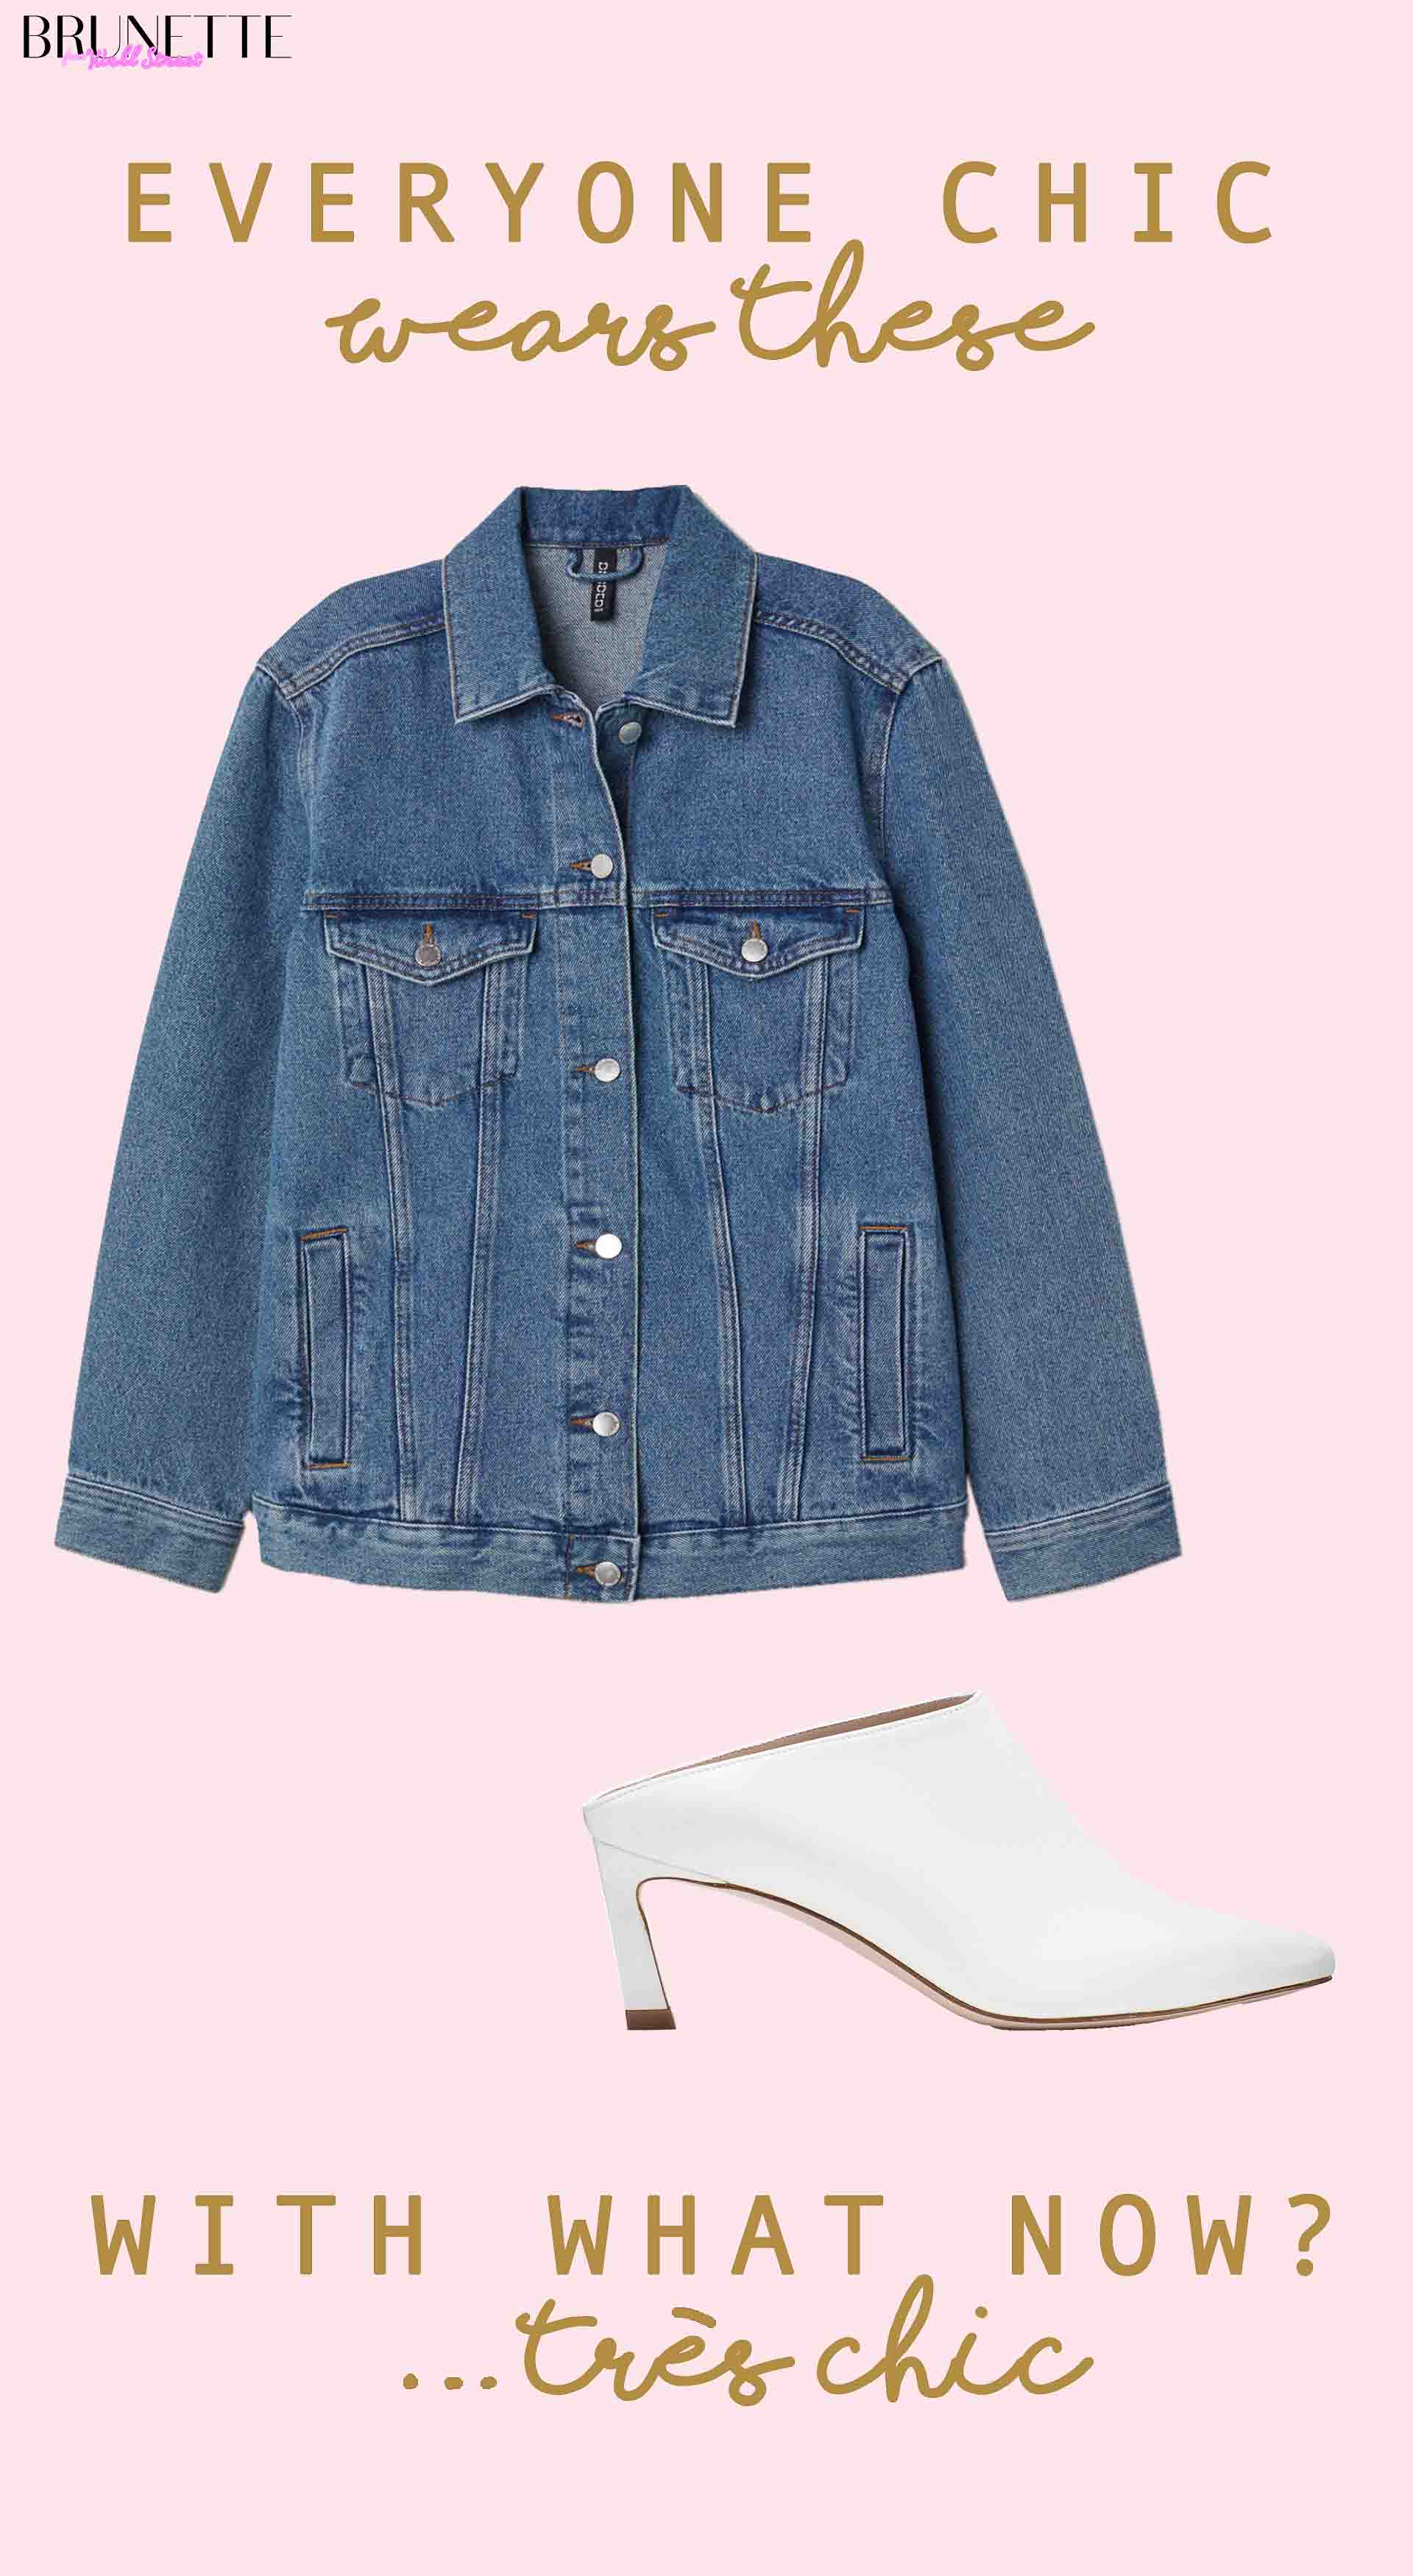 white mira mules stuart weitzman, blue denim jacket with text overlay everyone chic wears these with what now? tres chic